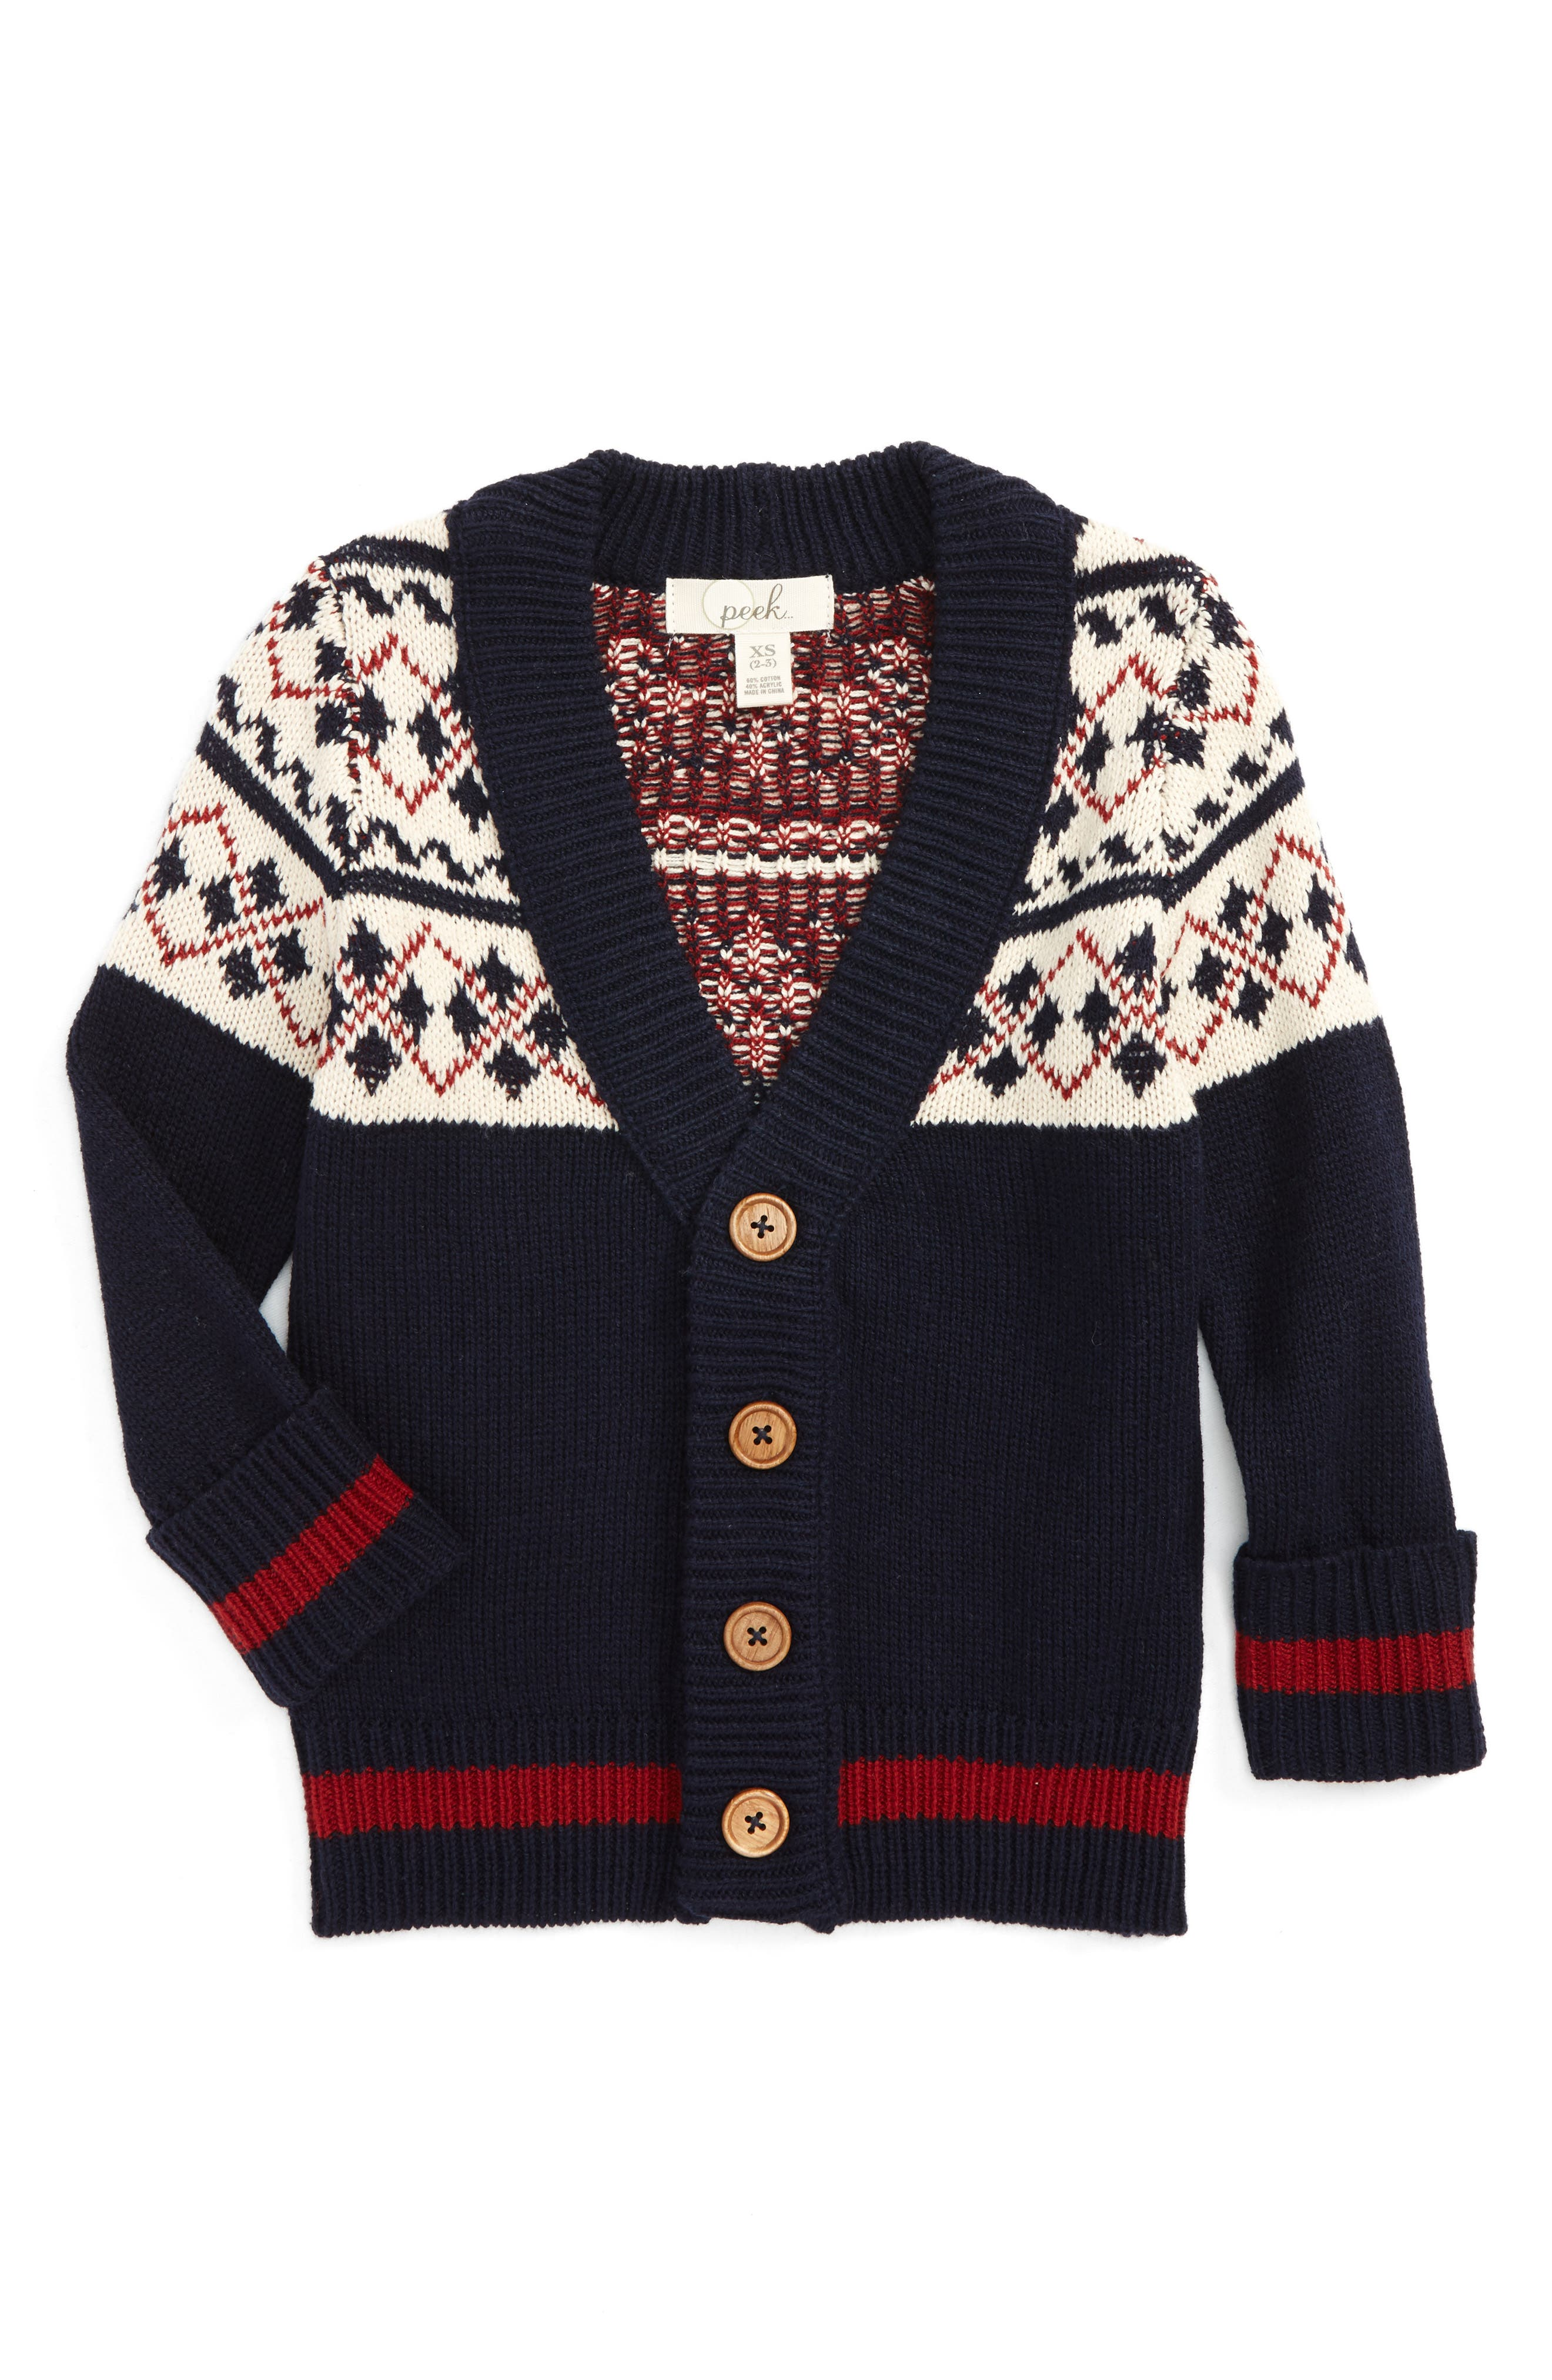 Main Image - Peek Mackai Pattern Cardigan Sweater (Toddler Boys, Little Boys & Big Boys)